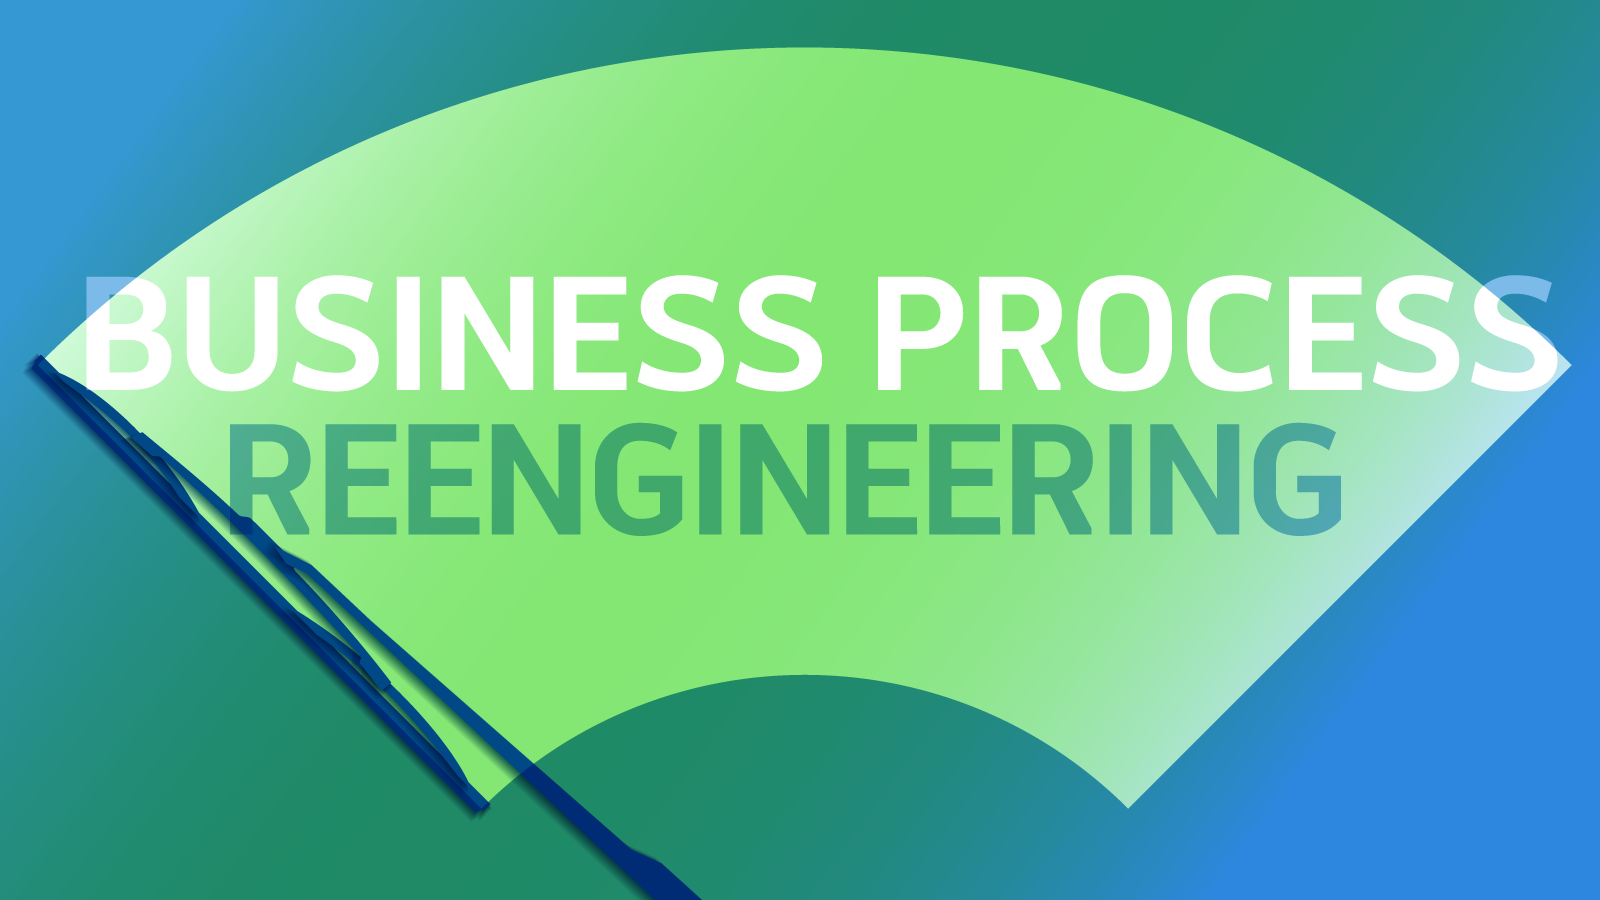 Business processes reengineering to be driven by technology in the post covid-19 era